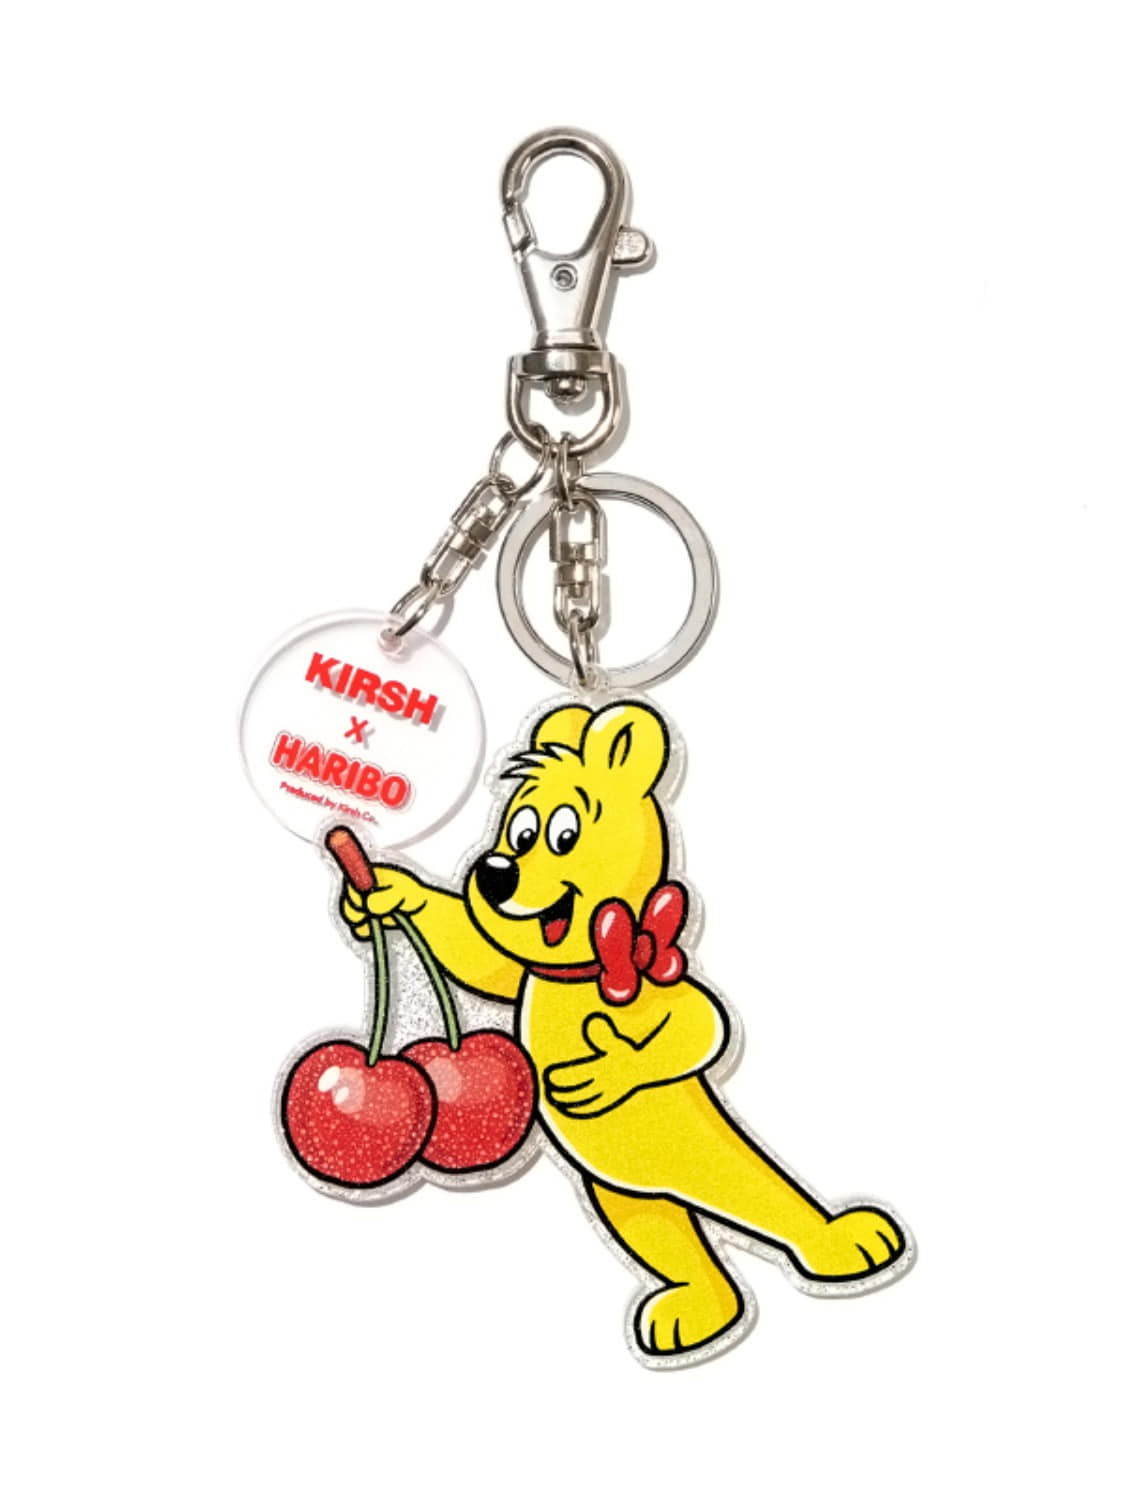 HARIBO GOLDBEAR KEYRING [YELLOW]